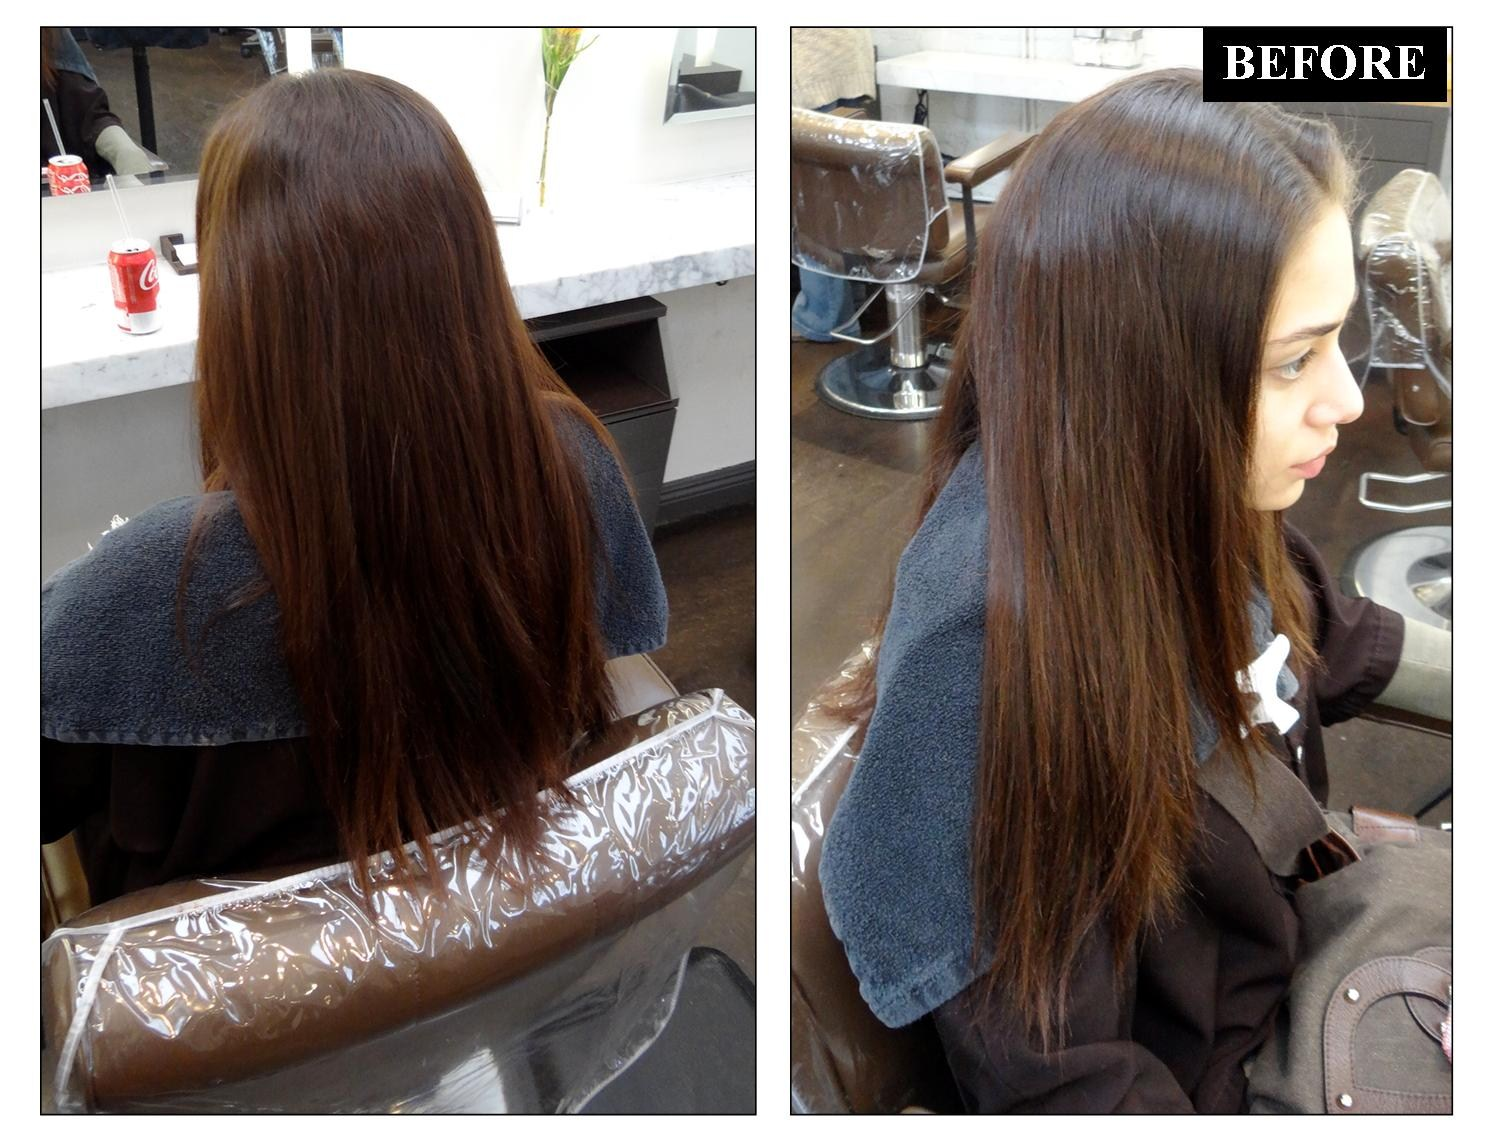 Henna Hair Color Before and After